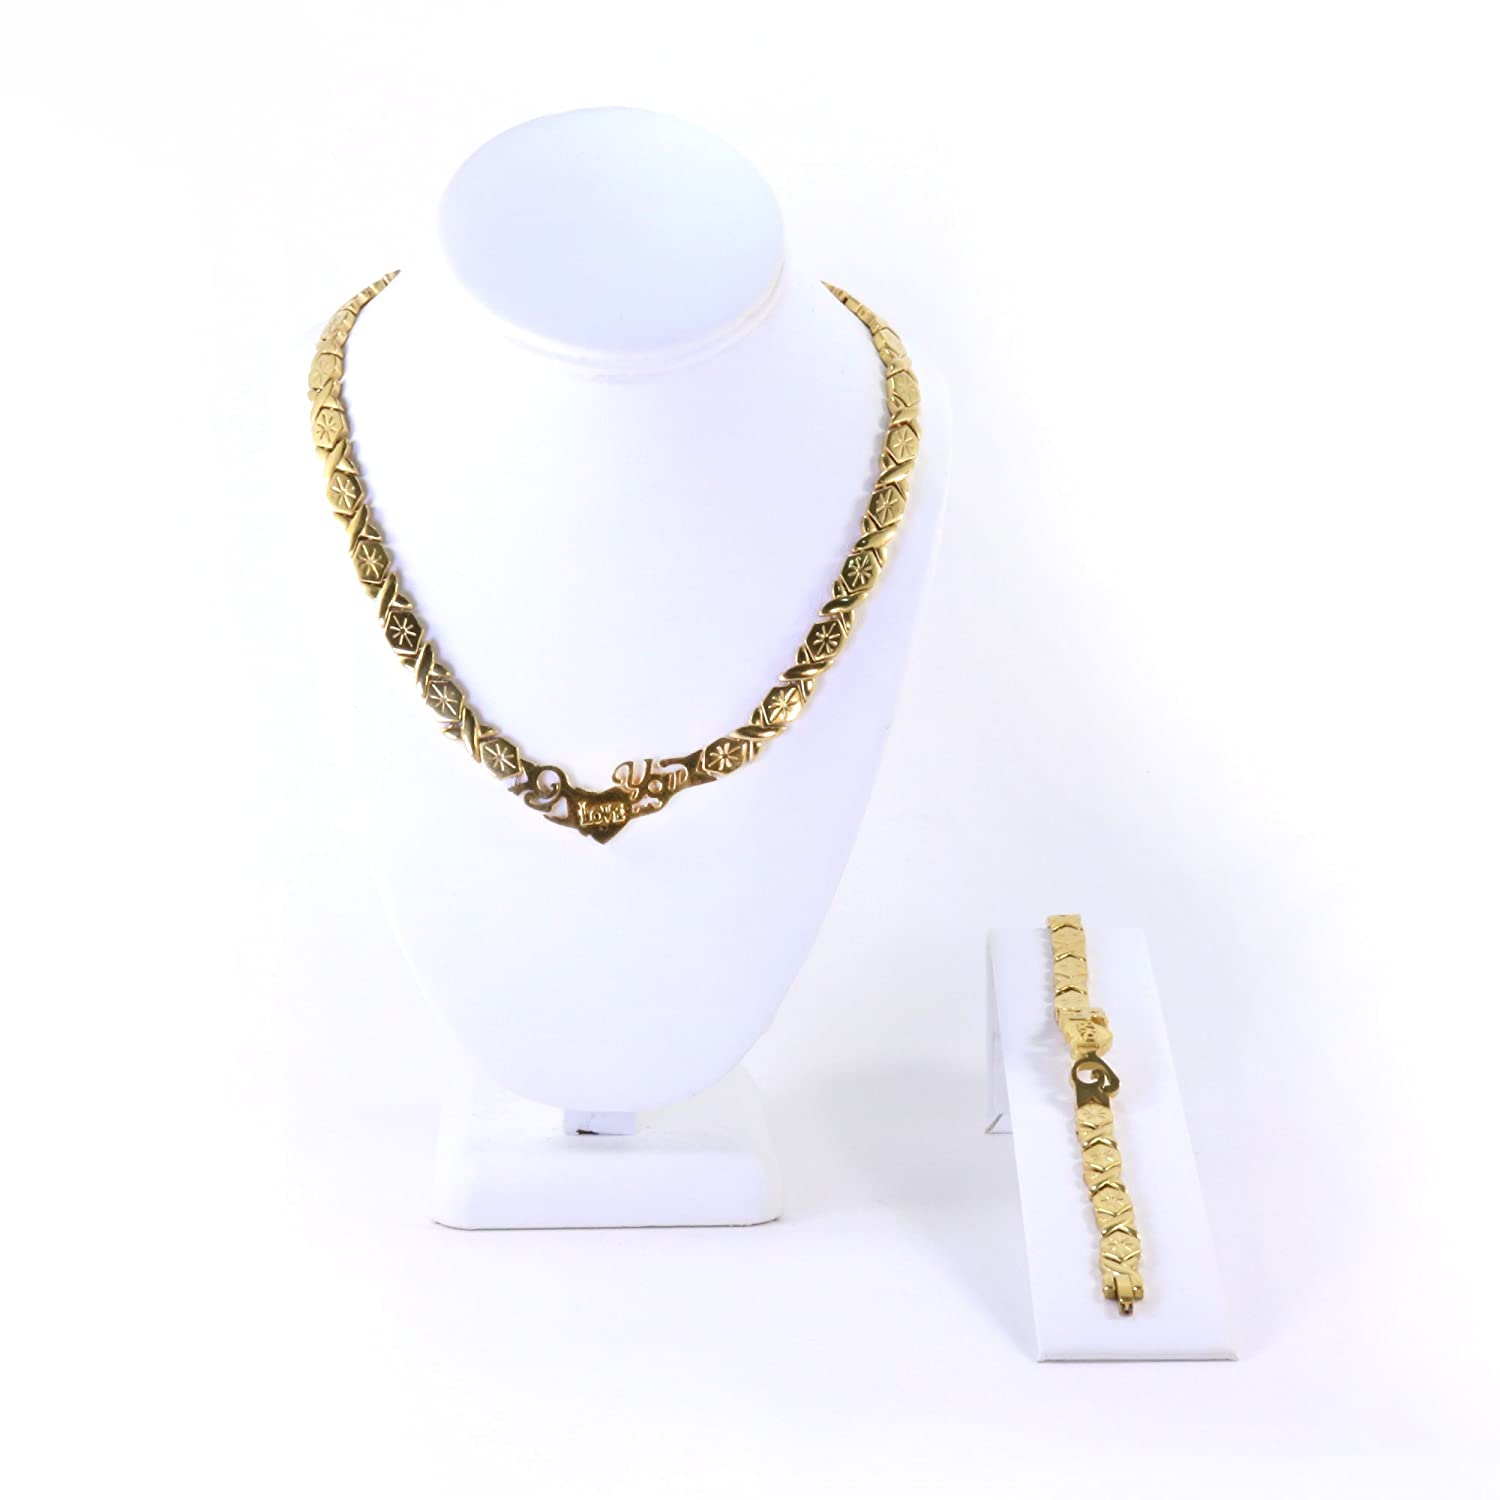 I LOVE YOU GOLD TONE HUGS AND KISSES NECKLACE /& BRACELET SET XOXO STARBURST 20 LONG Bling Bling NY NA